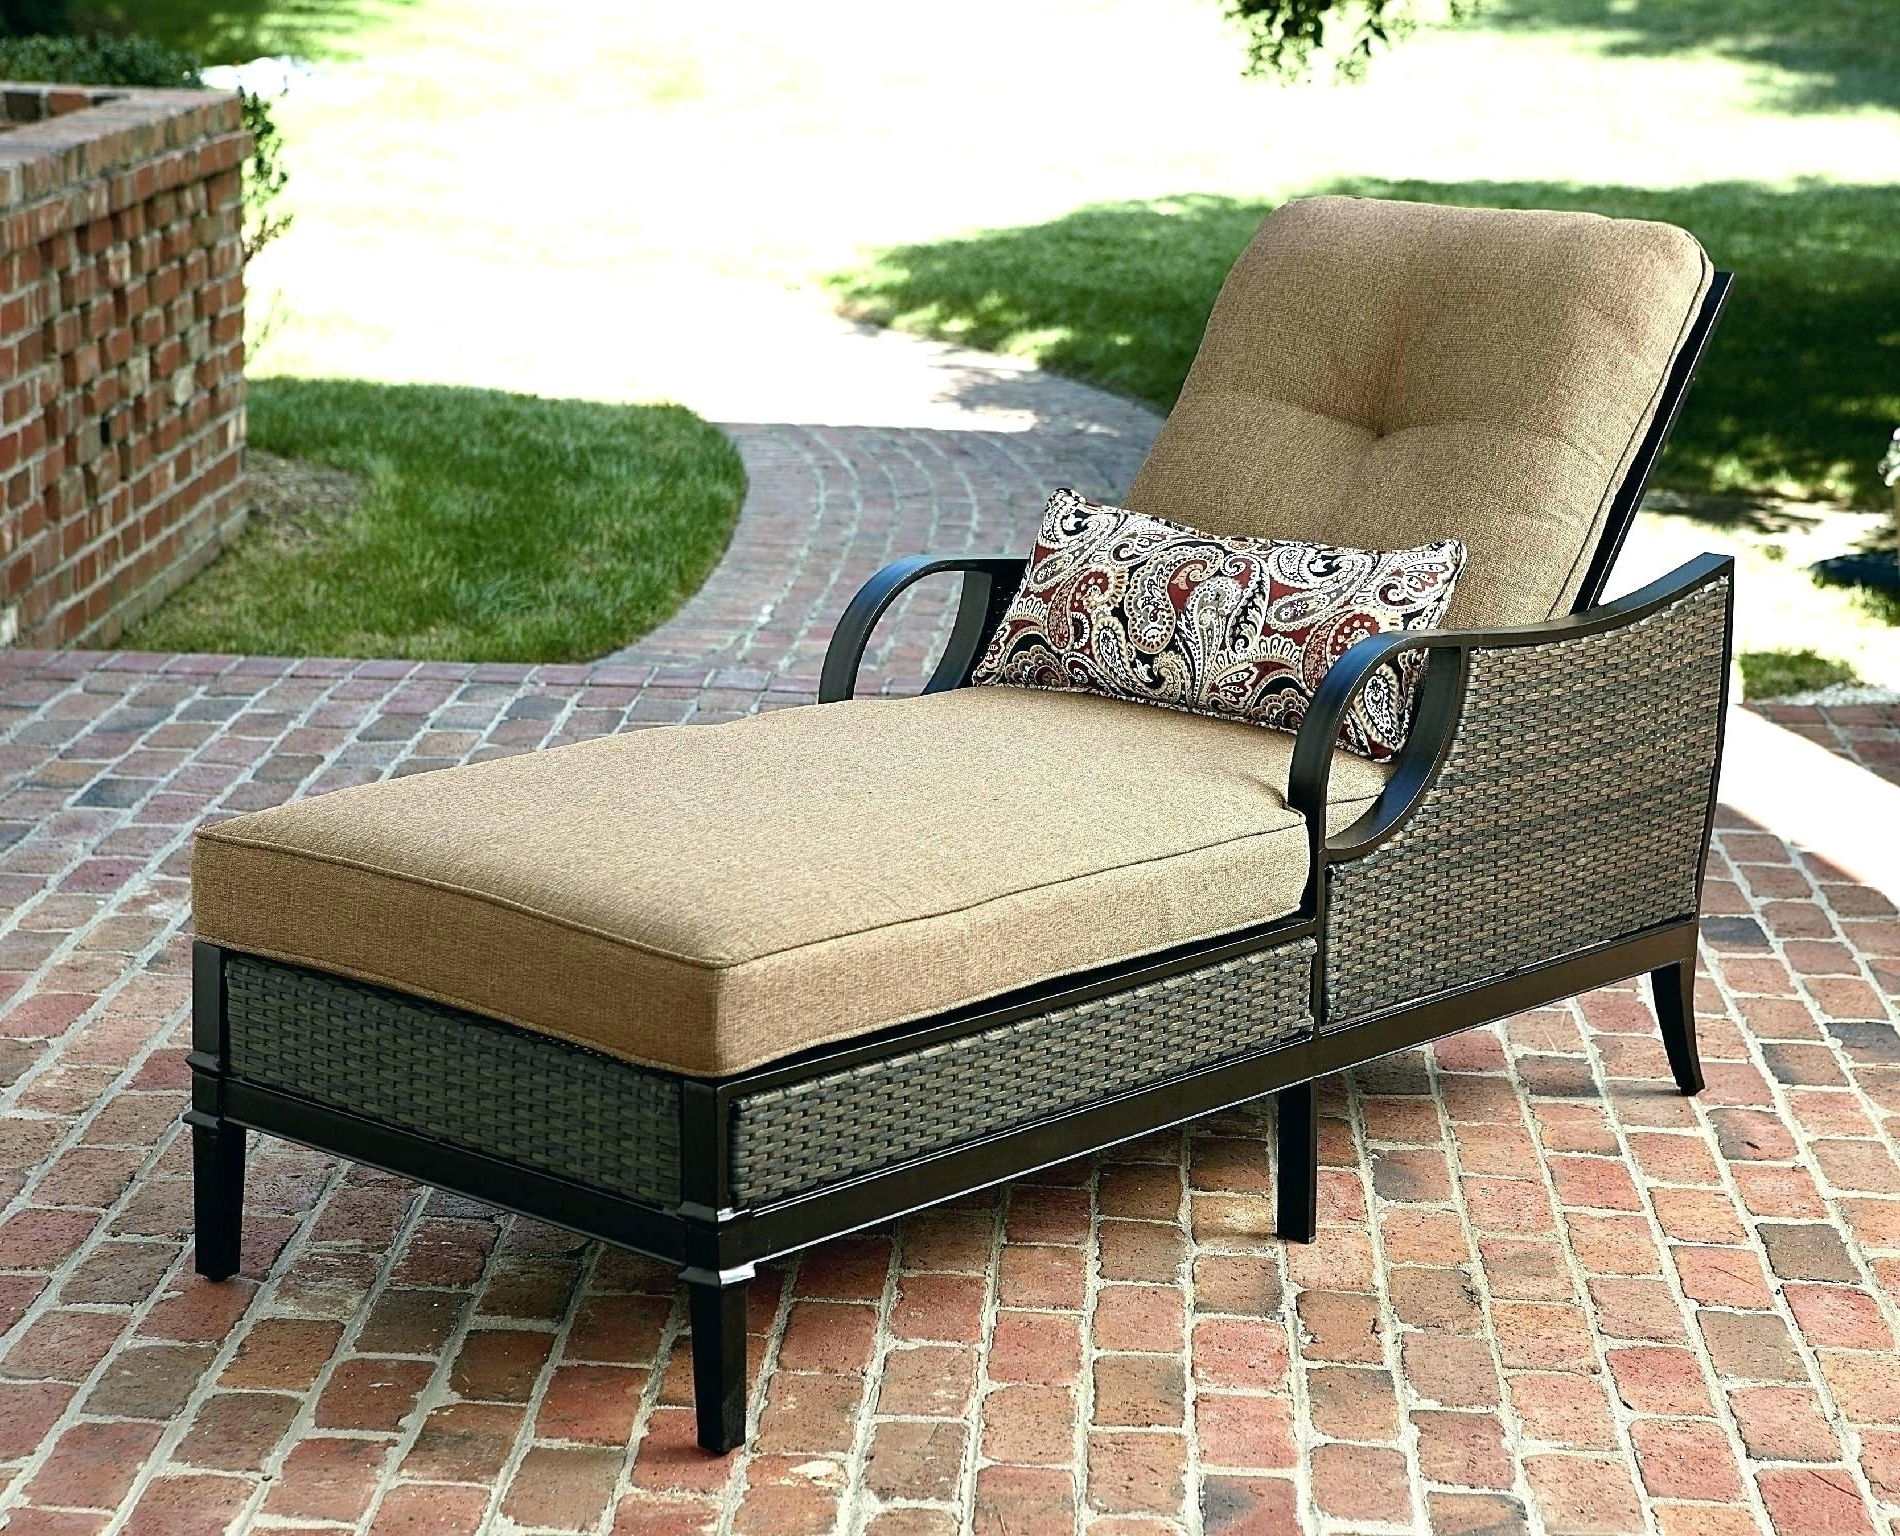 Walmart Chaise Lounge Cushions S Outdoor Double Cushion Patio With Well Liked Walmart Chaise Lounge Cushions (View 8 of 15)